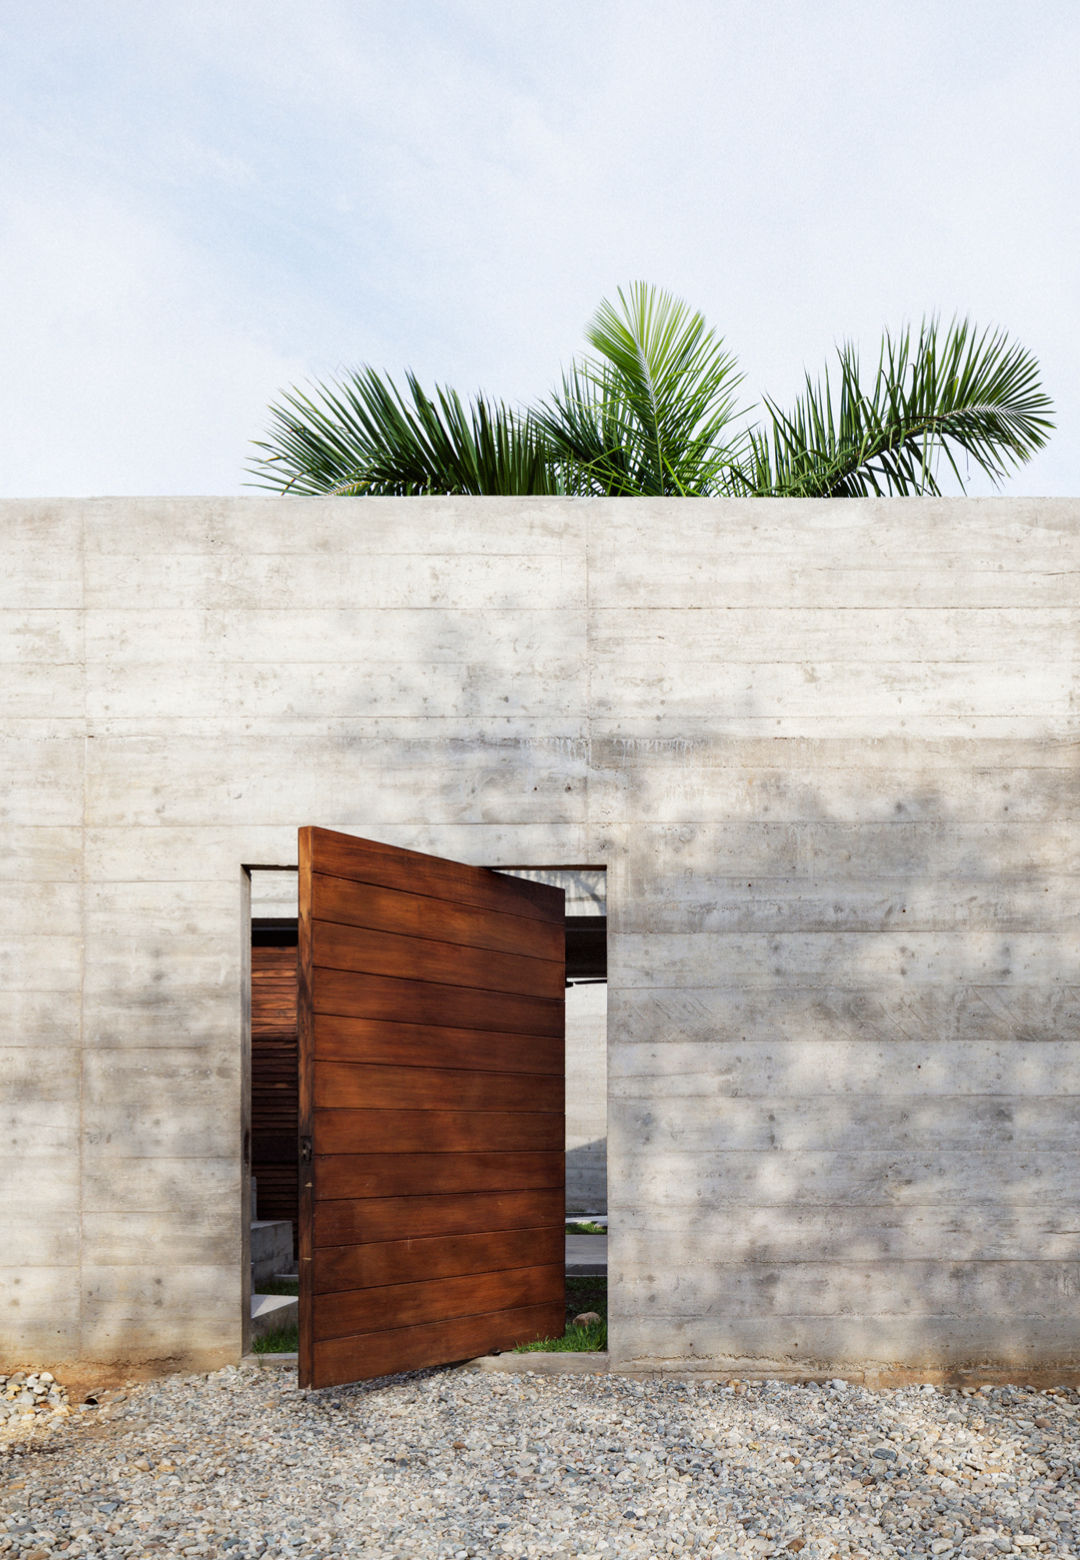 The exterior façade of the house that resembles a fort | Mexico | Ludwig Godefroy | STIRworld